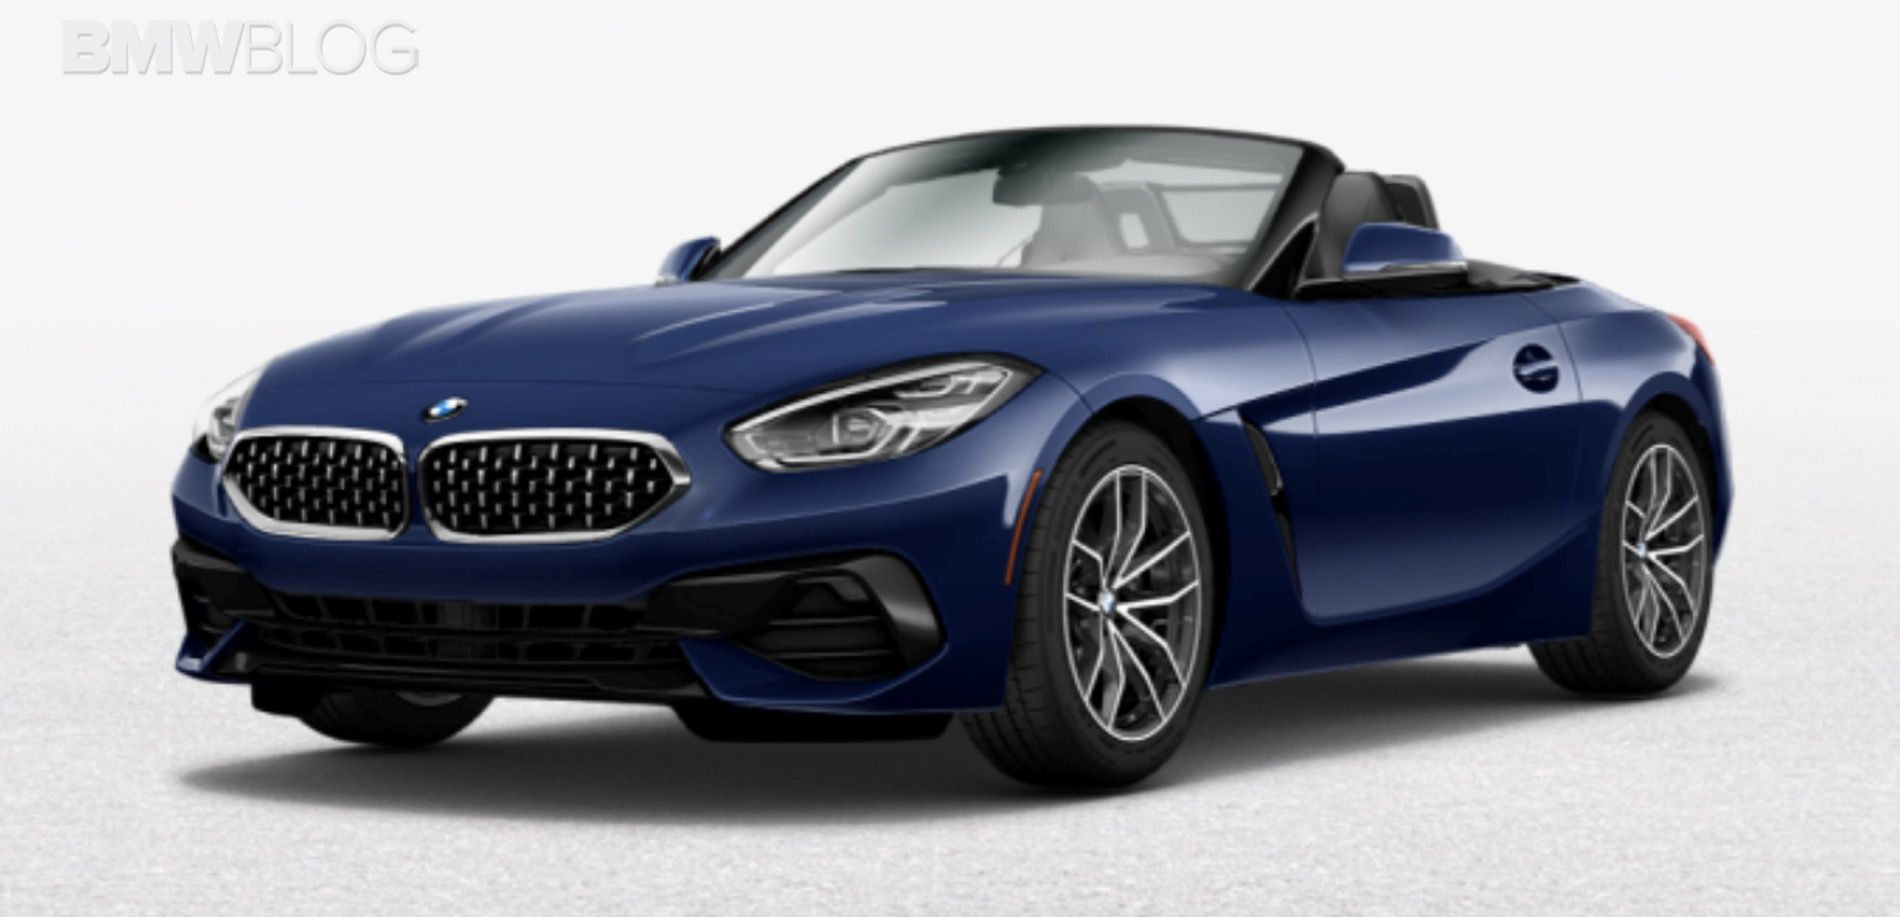 See The New Bmw Z4 G29 In Different Colors